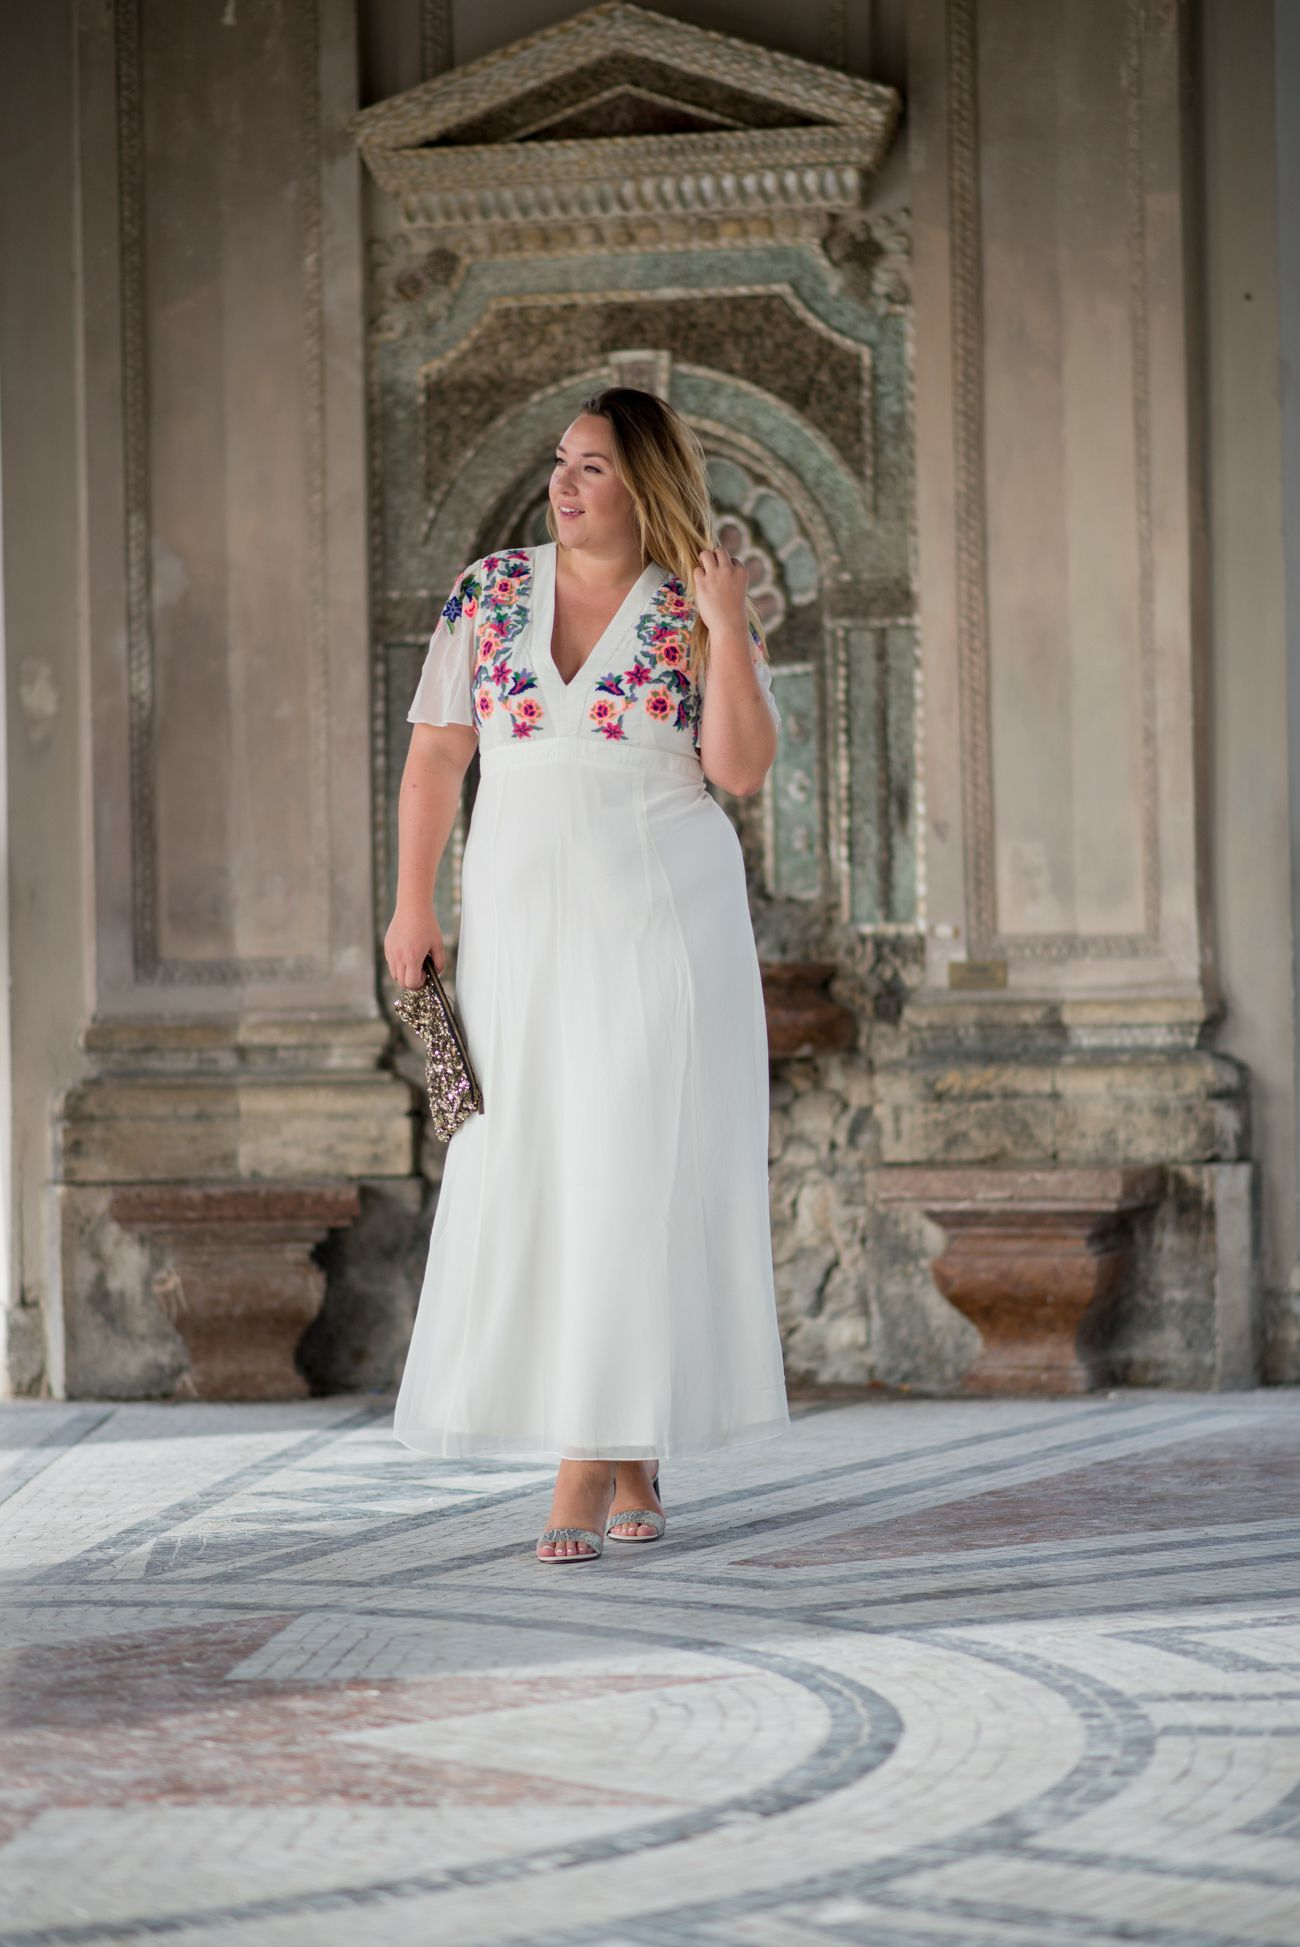 The Skinny and the Curvy One_Fashion_blogger_Plussize_Soulfully_Summerball_Asos_Asos Curve_Plus Size Blogger_Plus Size Münche_Fashionblogger München (6 von 20)